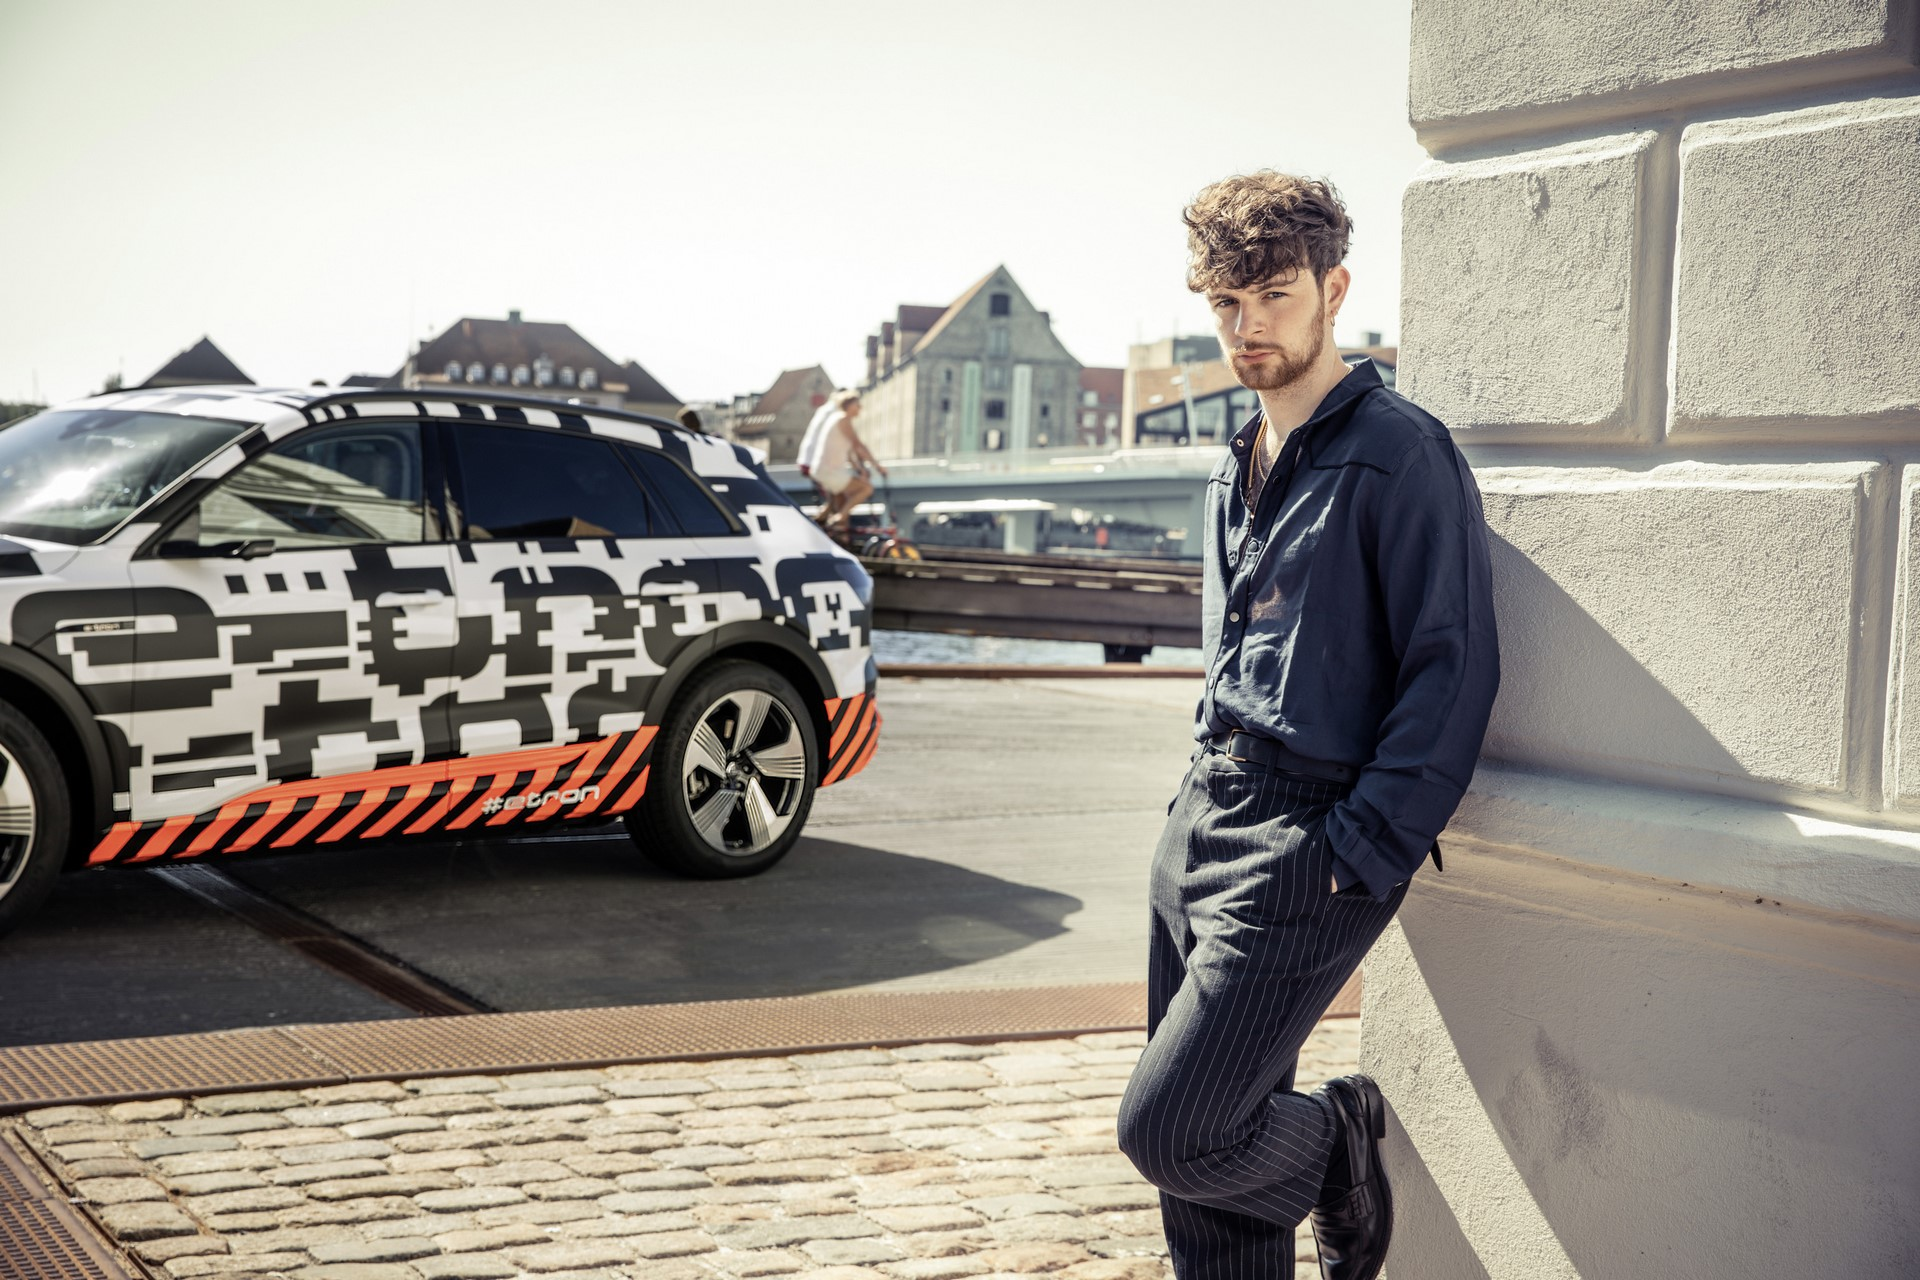 Tom Grennan, singer and songwriter, with the Audi e-tron prototype